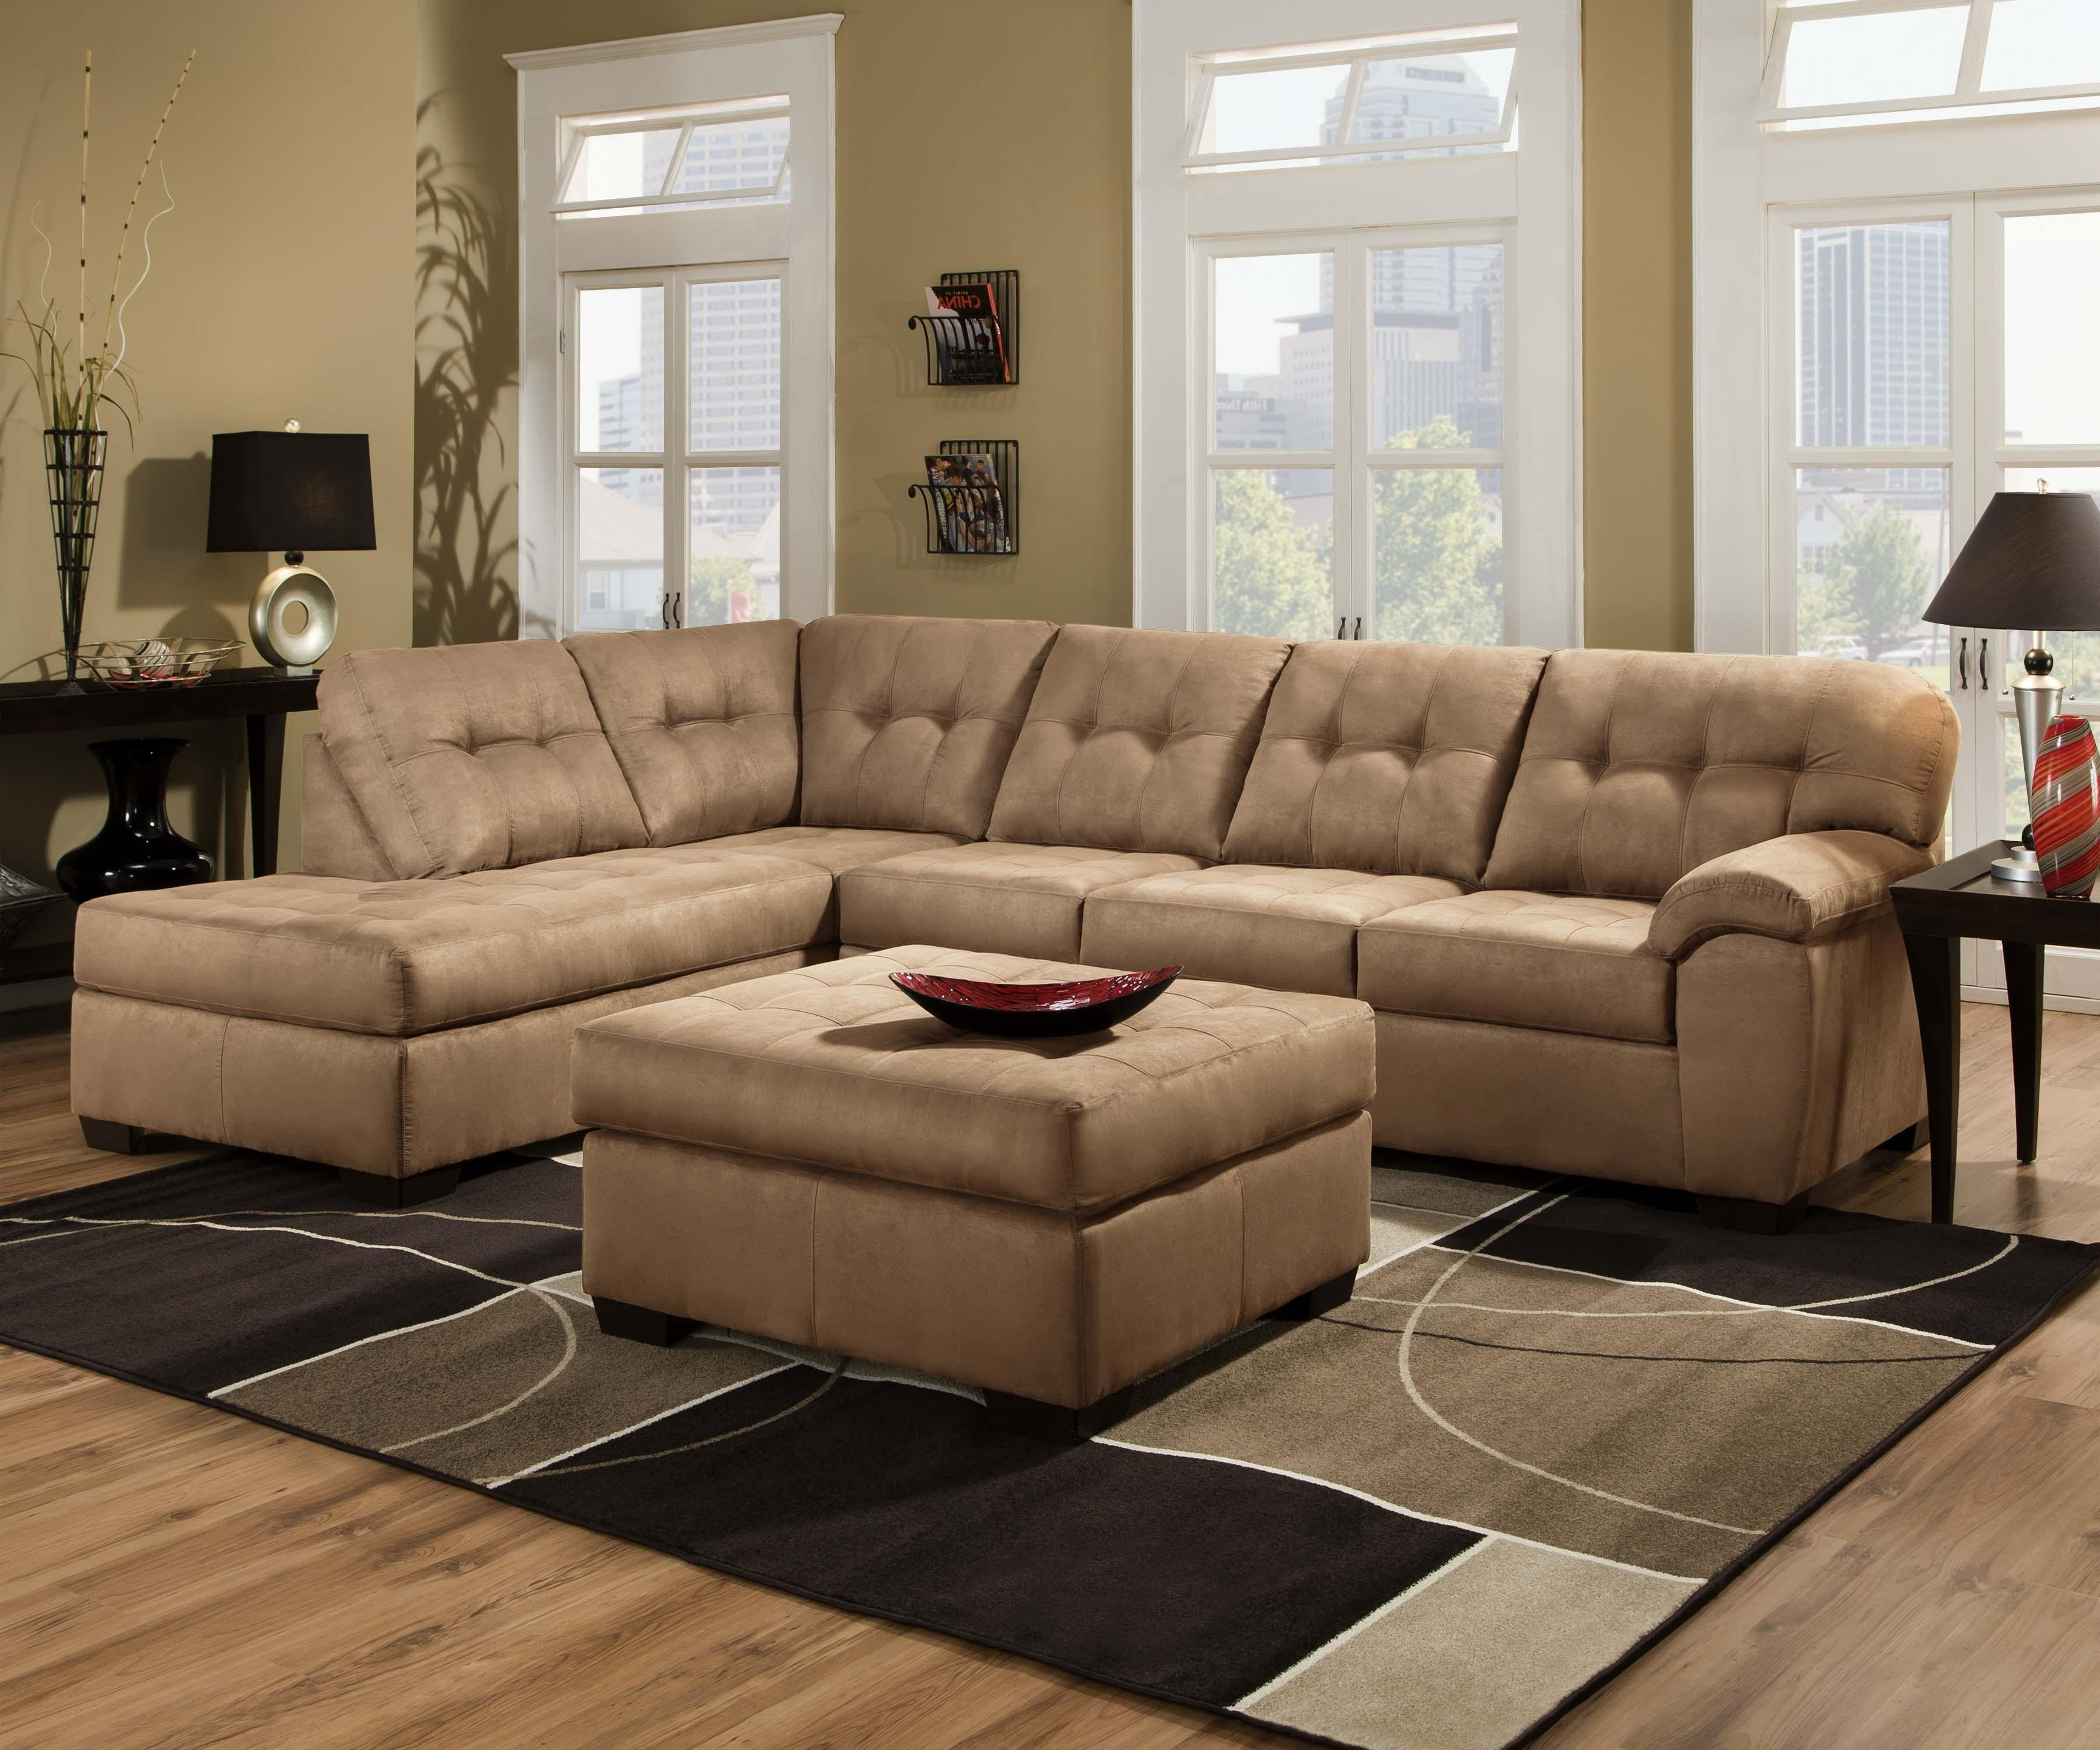 2017 United Furniture Industries 9558 Transitional 2 Piece Sectional For Jacksonville Nc Sectional Sofas (View 1 of 15)